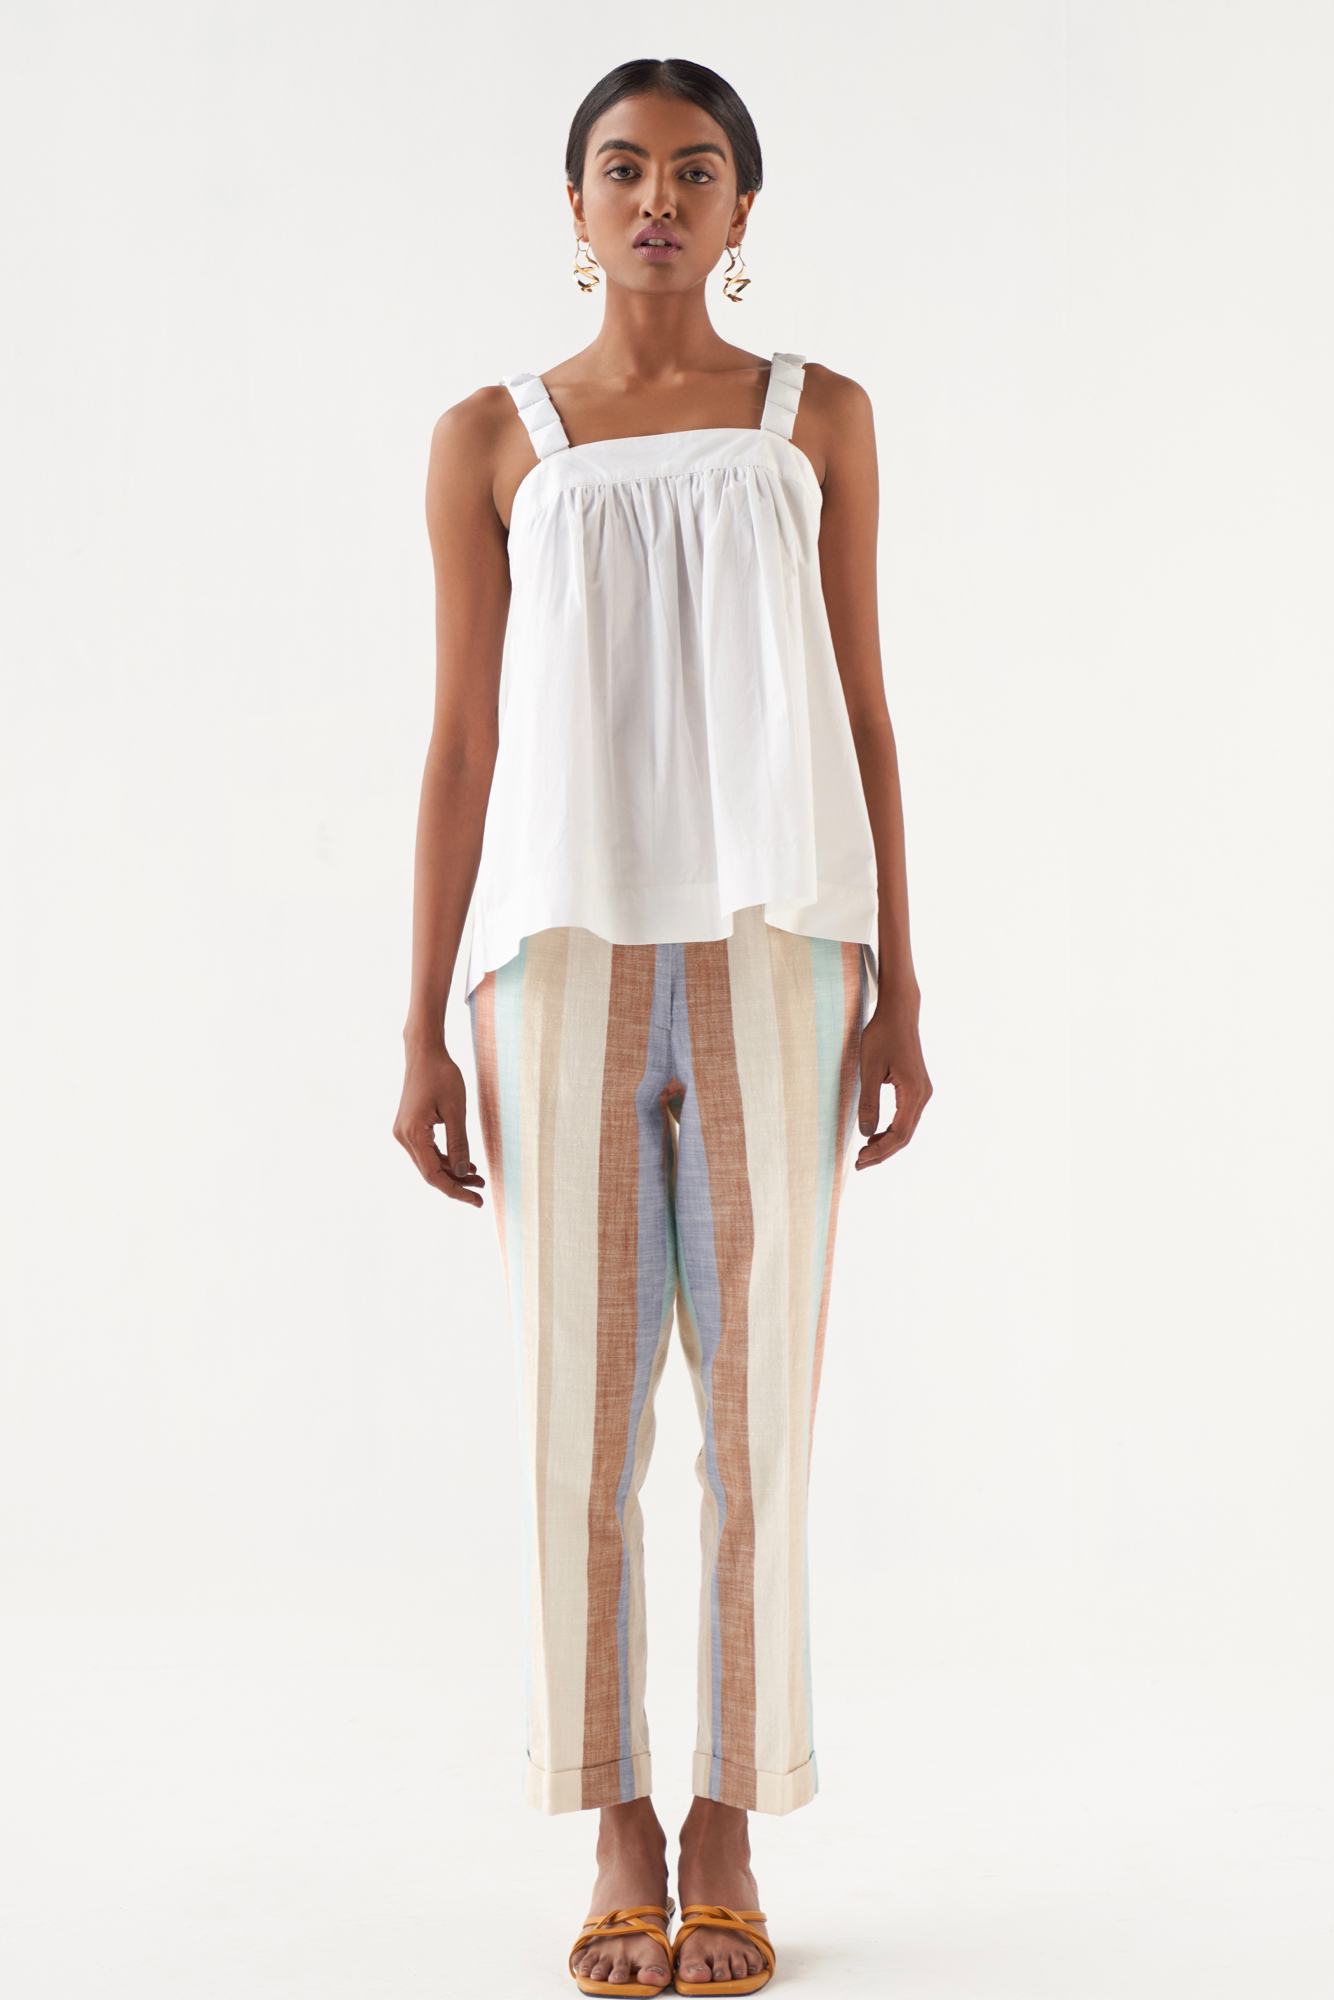 MARRAKESH SOLID WHITE COTTON POPLIN FABRIC TOP WITH FABRIC COVERED STONE STRAPS